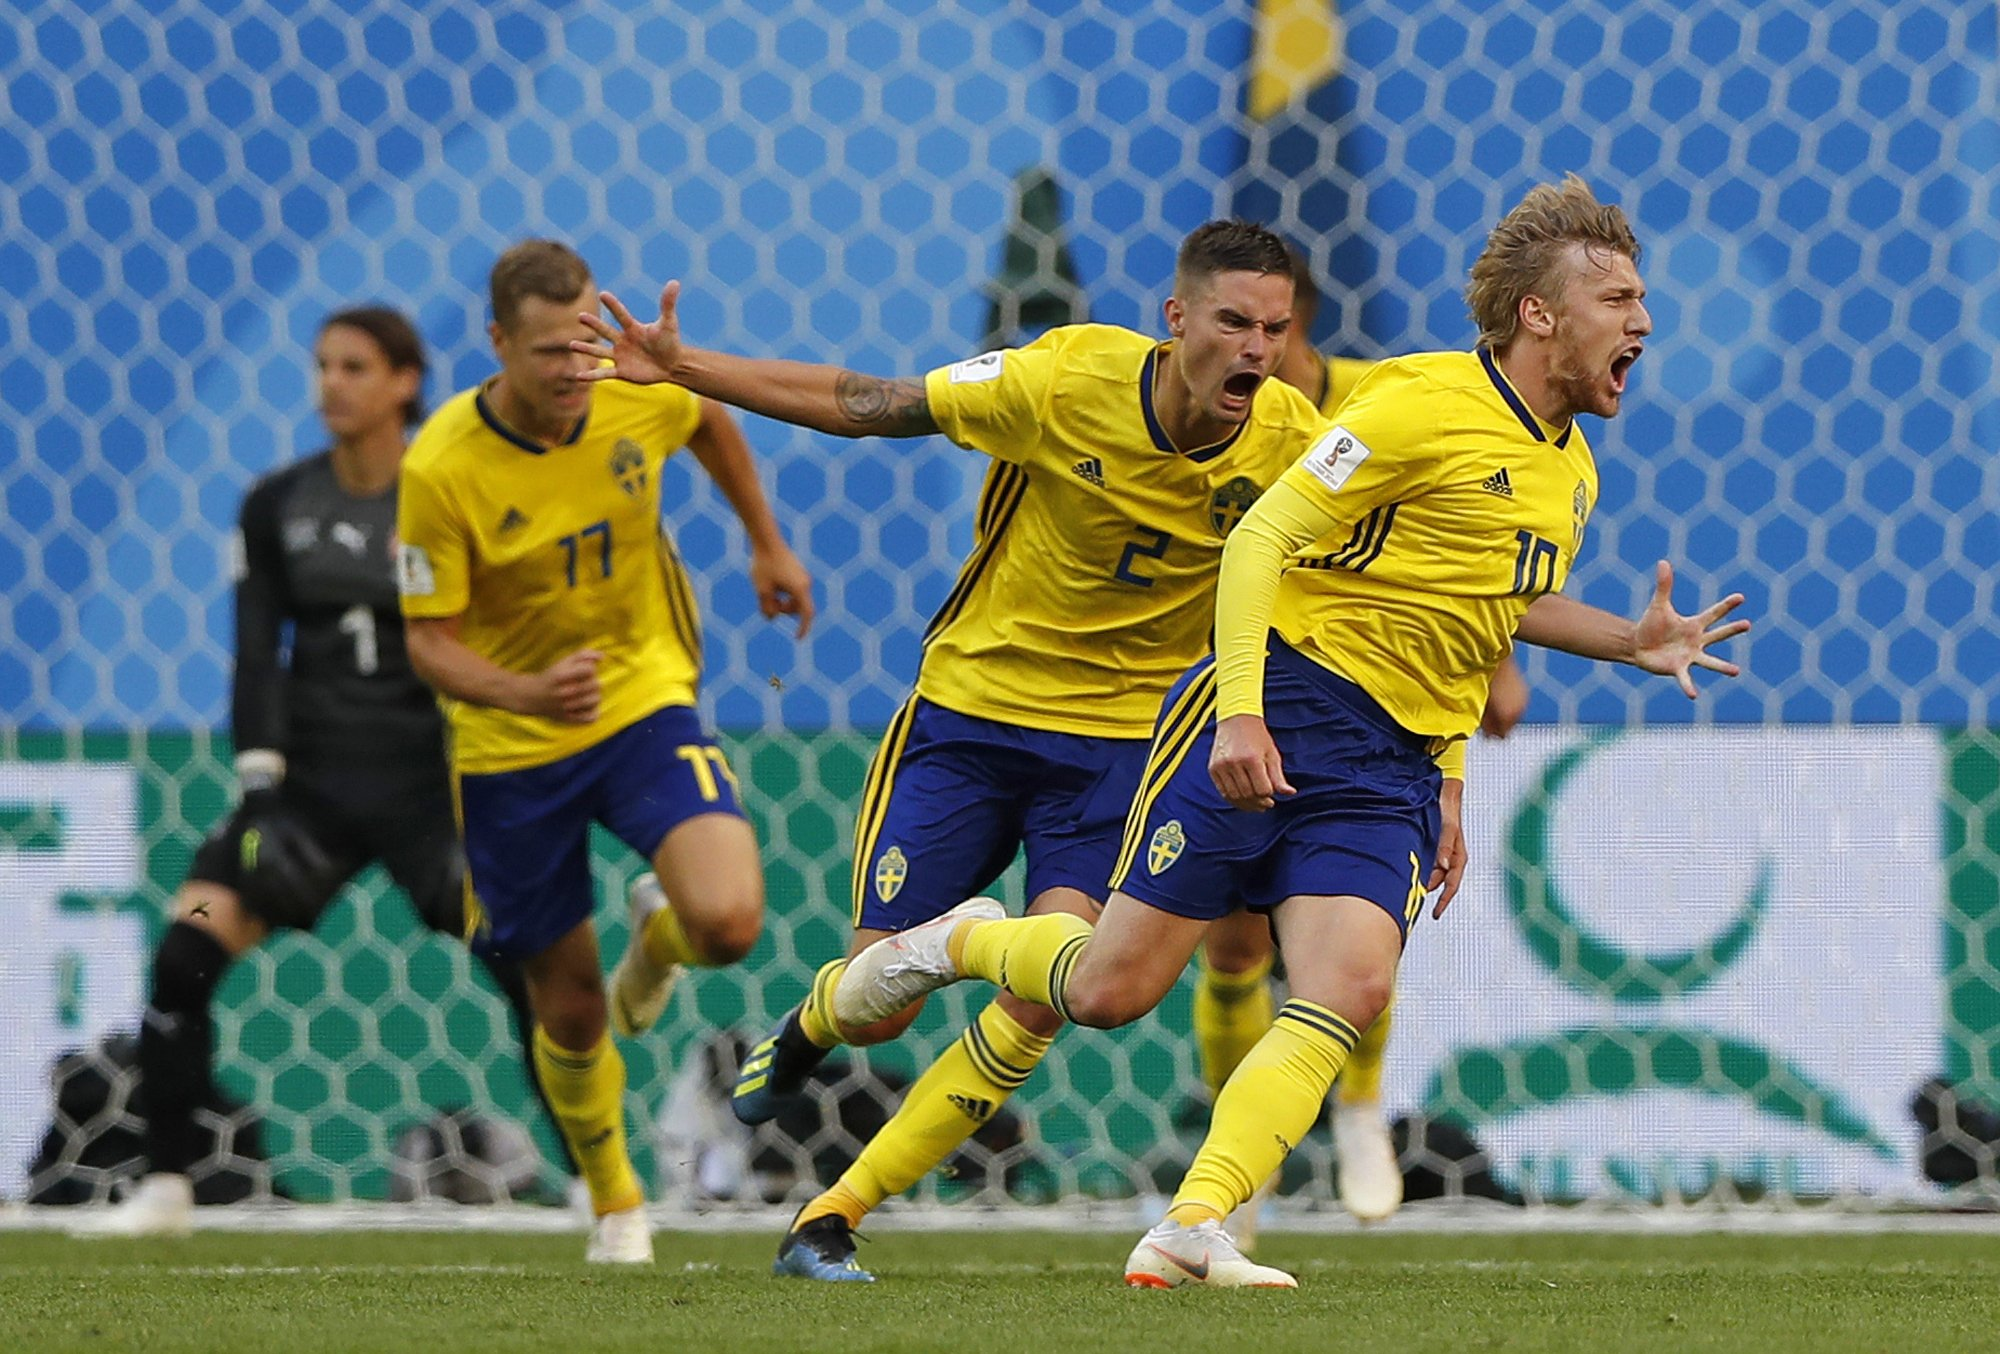 Emil Forsberg has been in fine form for the Swedish